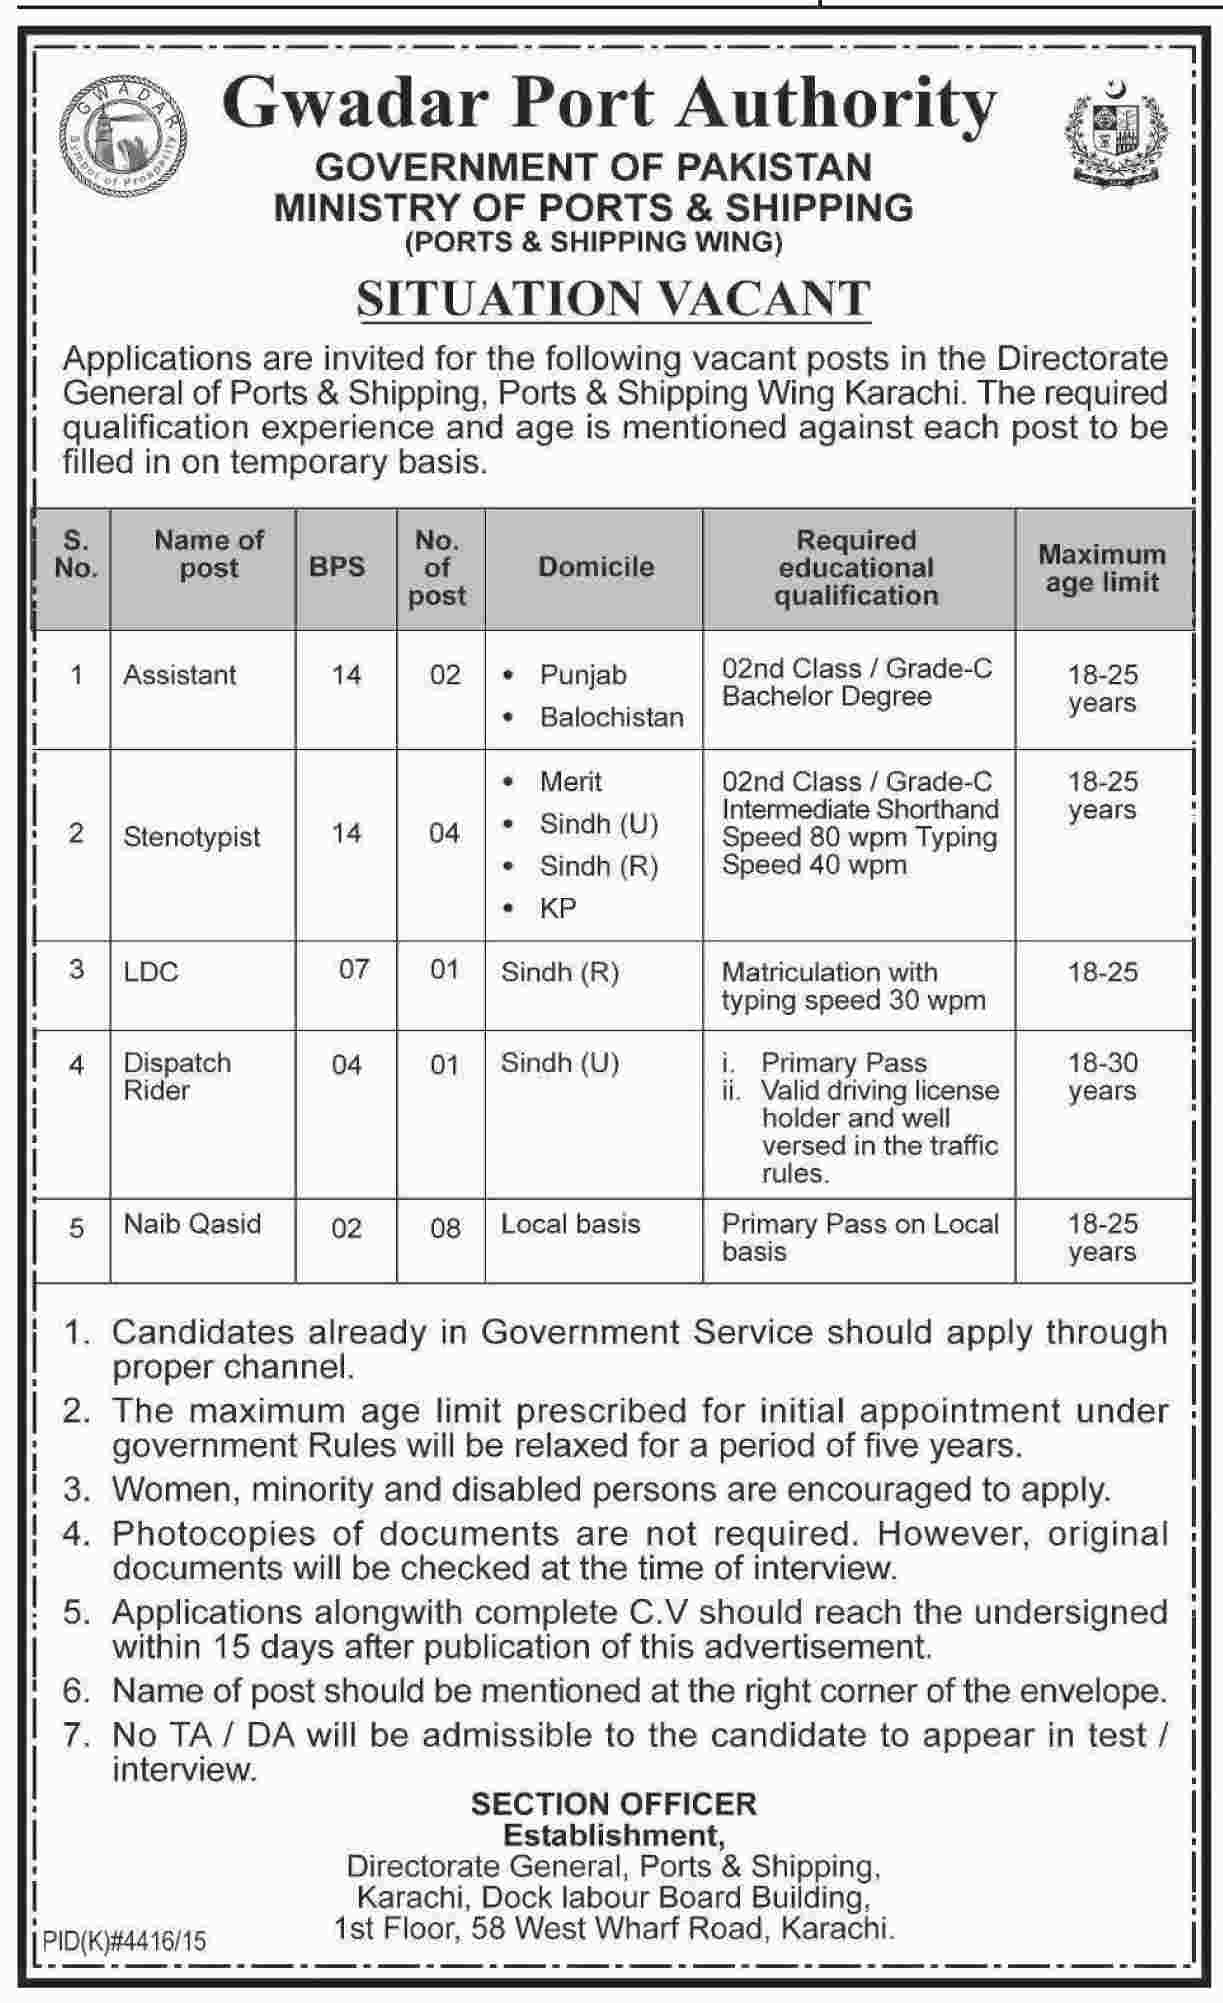 Gawadar Port Authority Jobs 2016